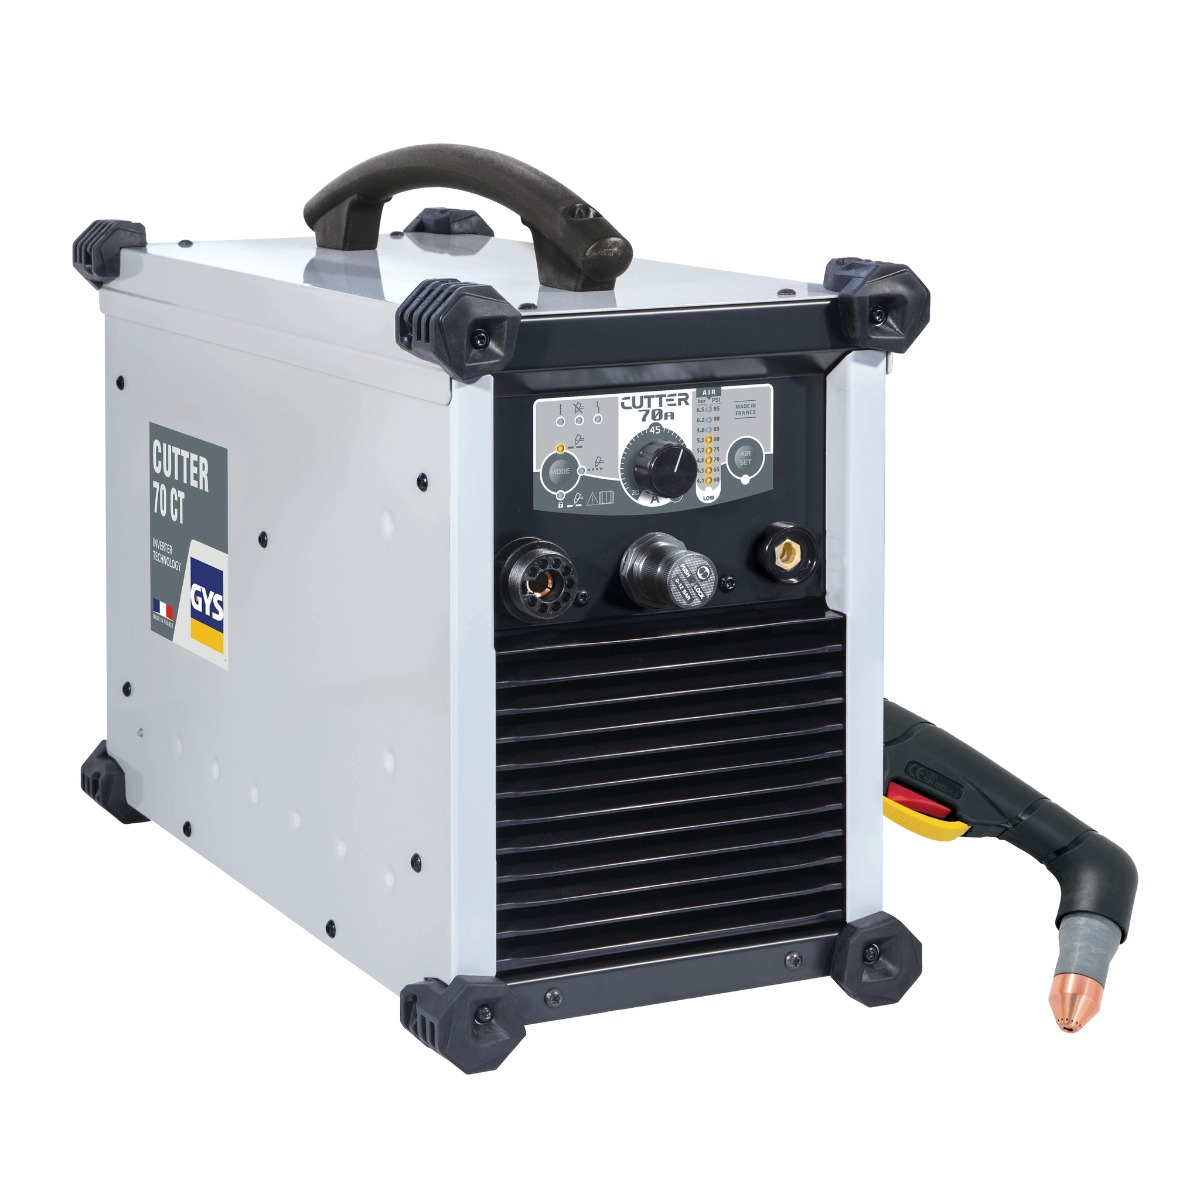 GYS 013841 Plasma Cutter 70A CT - Torch Included